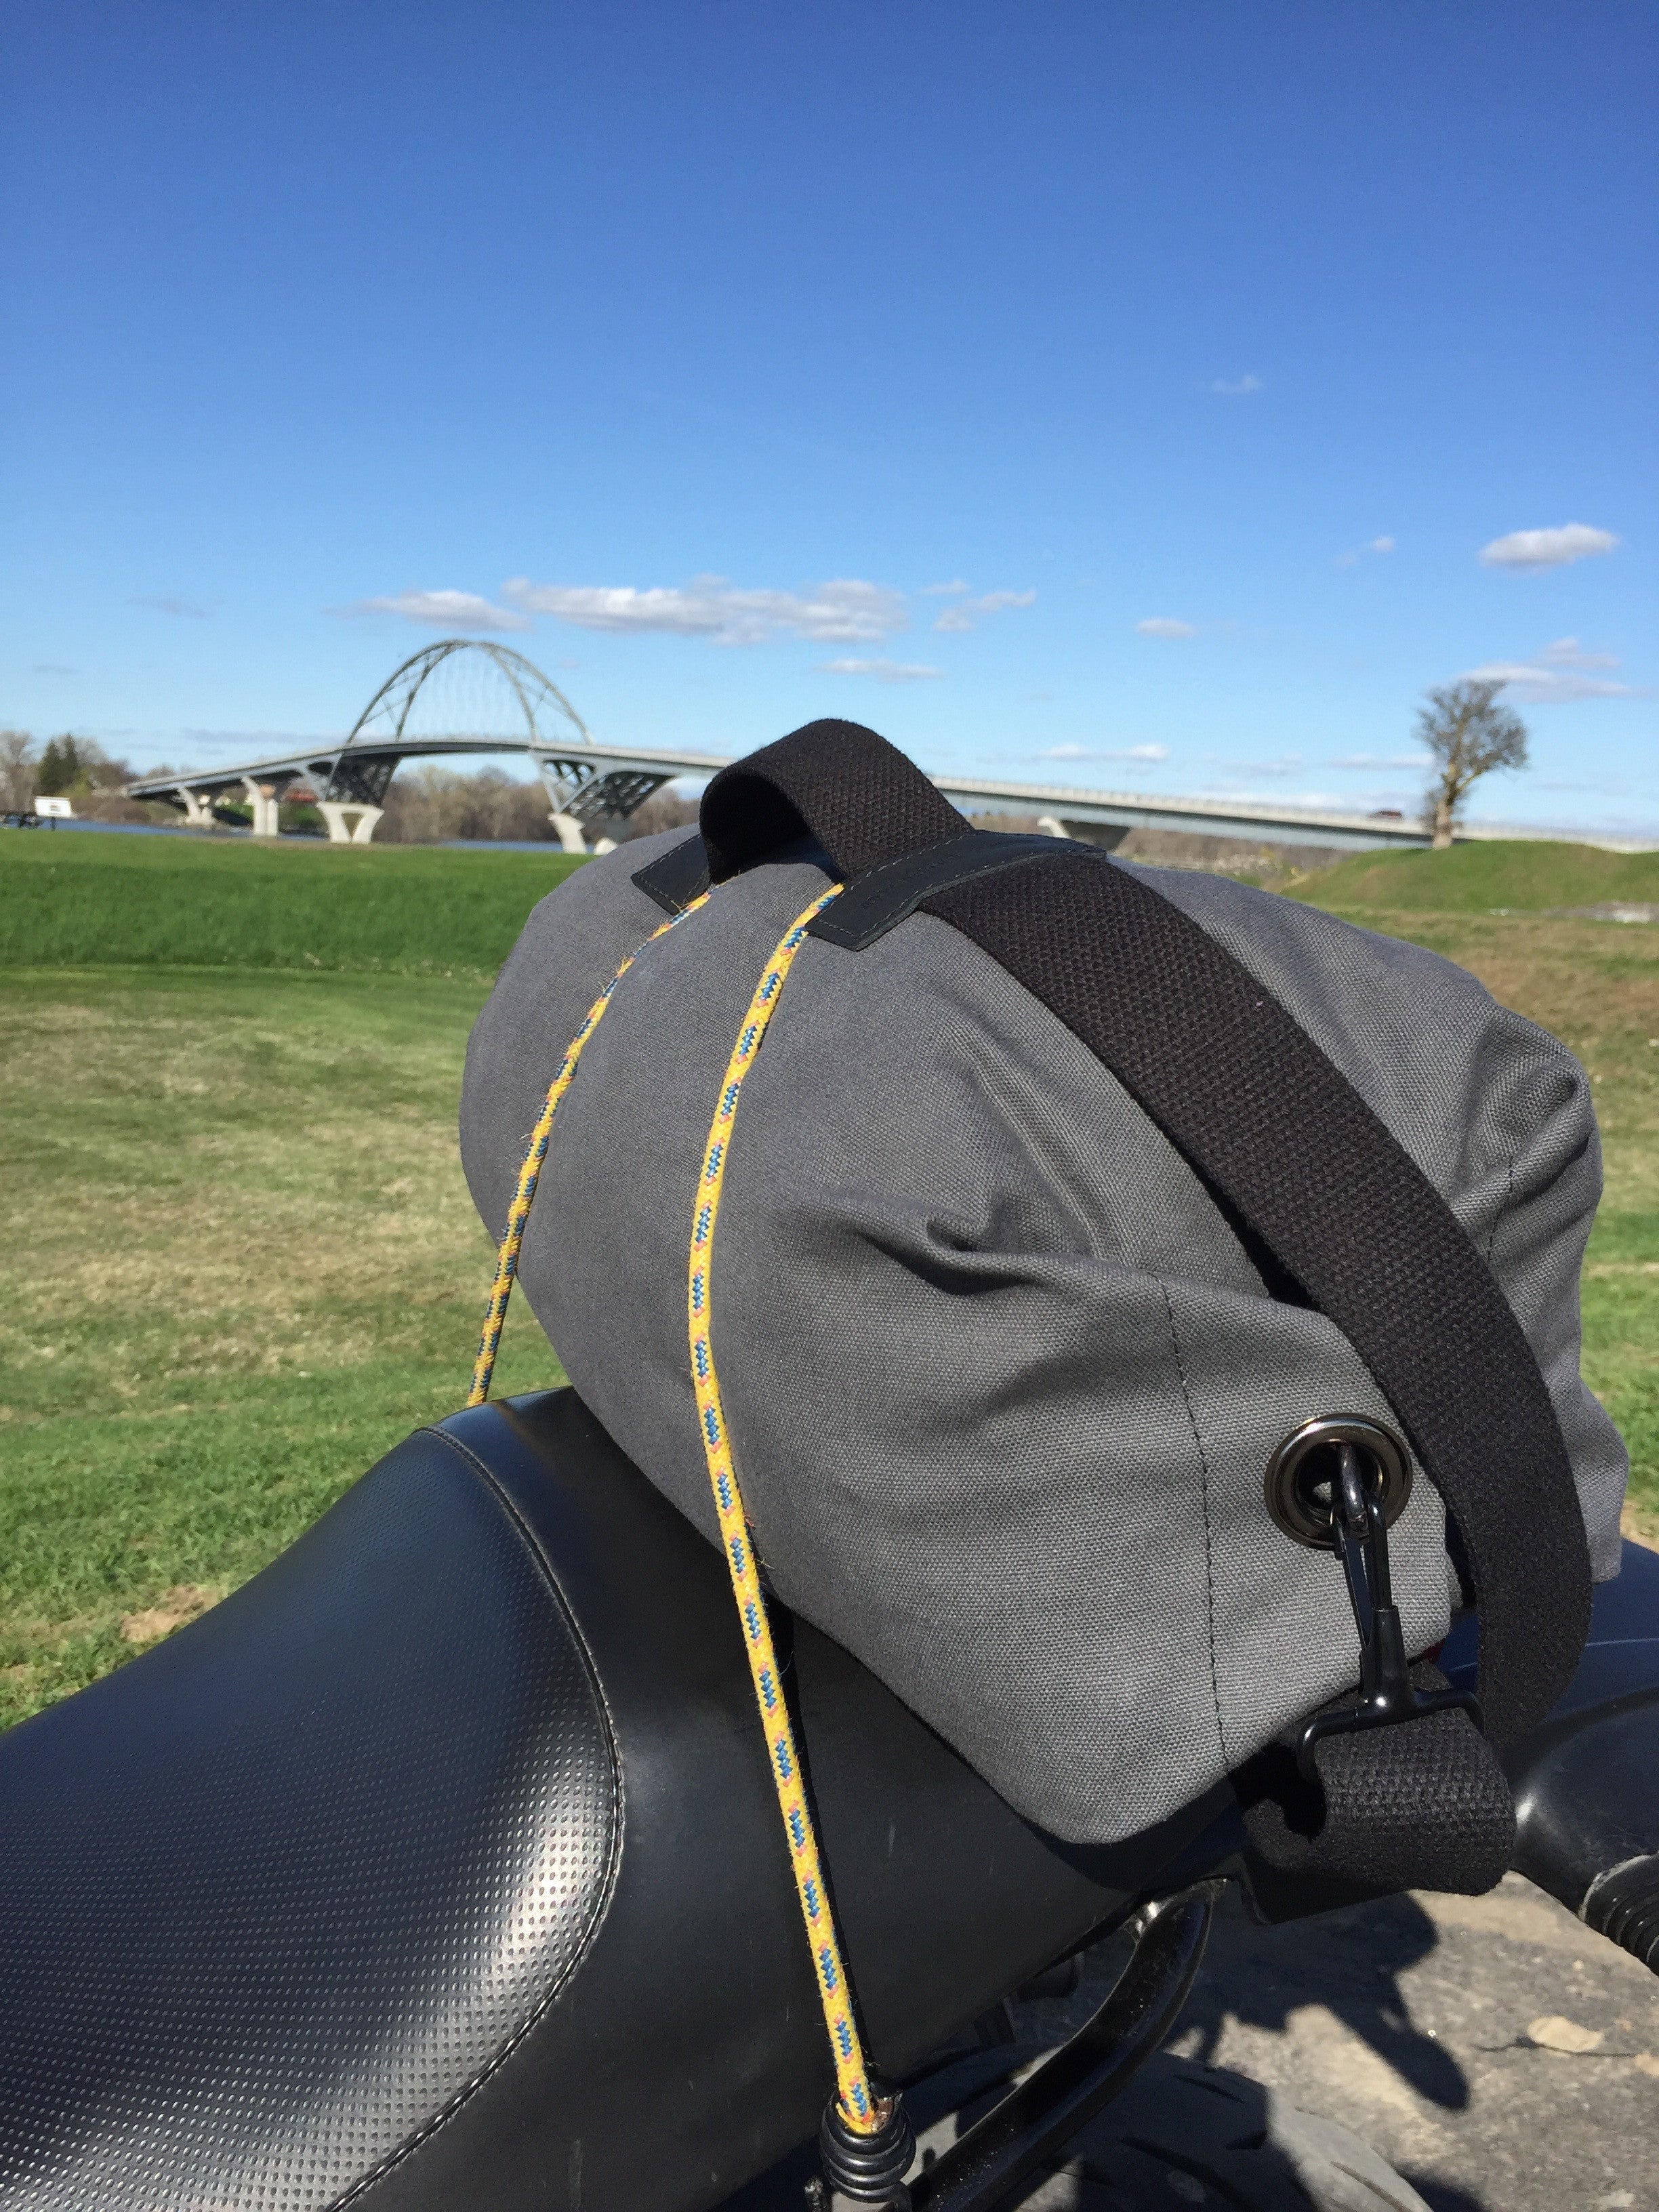 the shawshank motorcycle bag